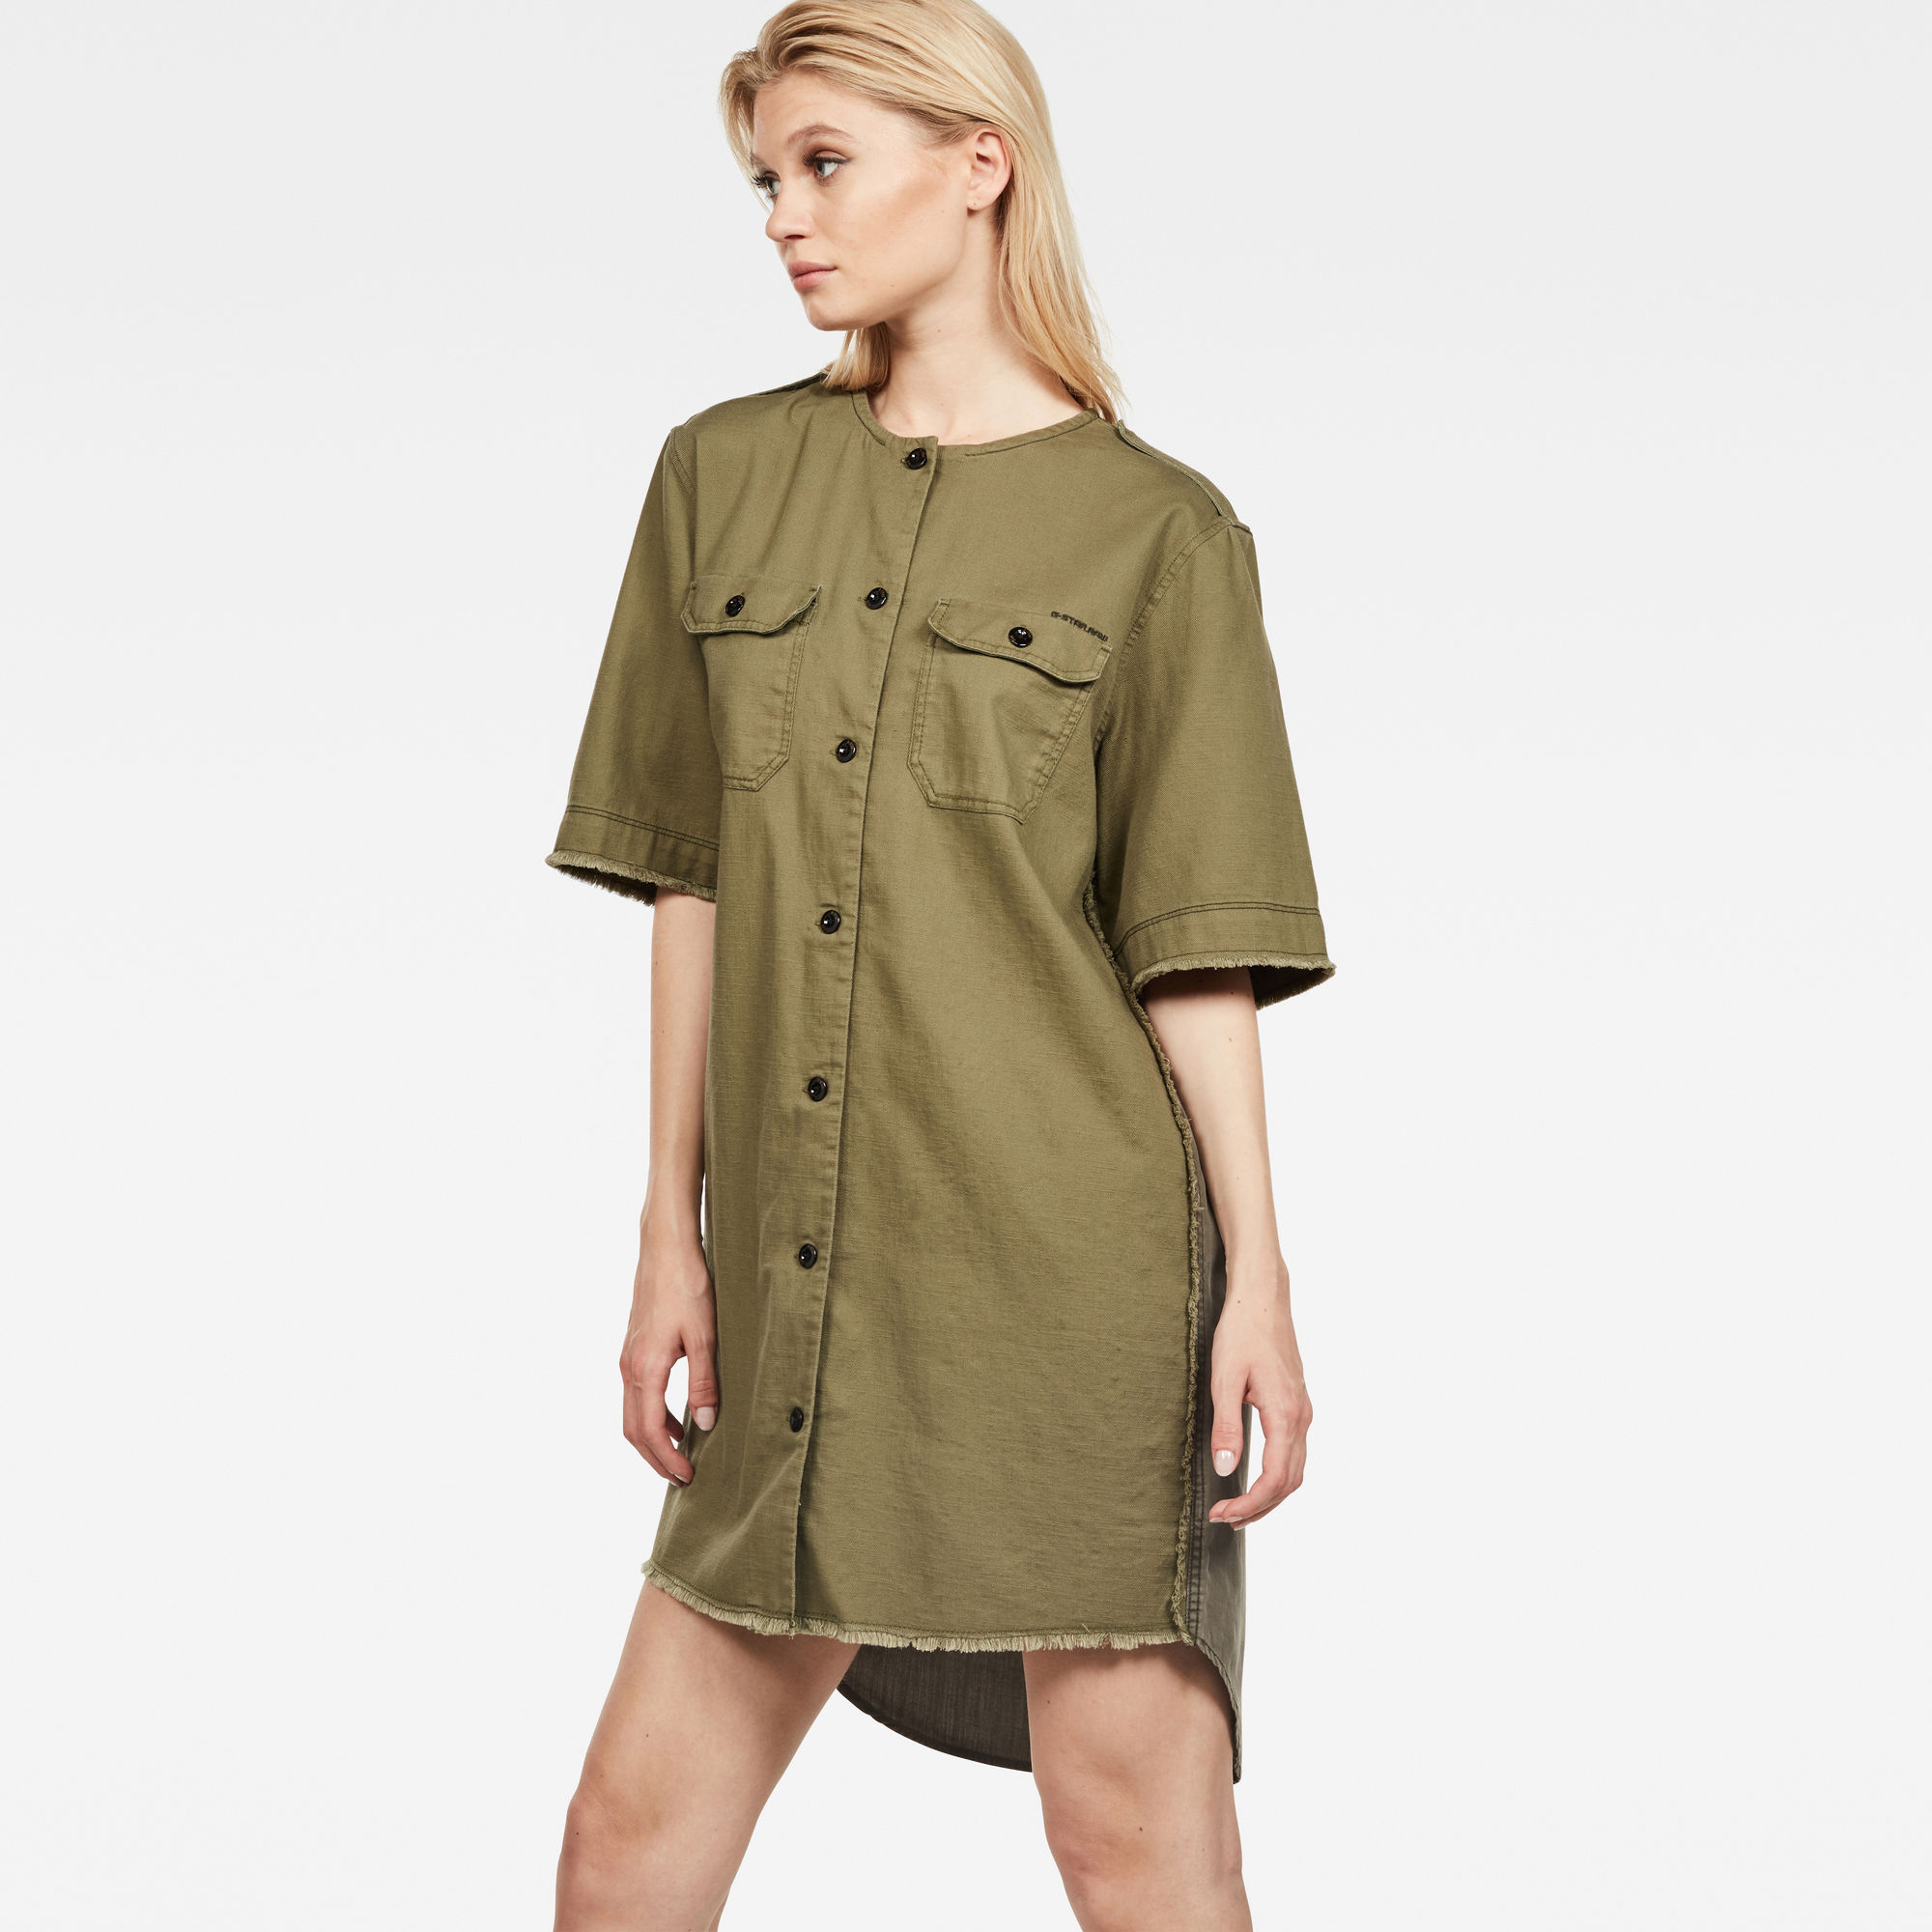 G-Star RAW Beryl Shirt Dress